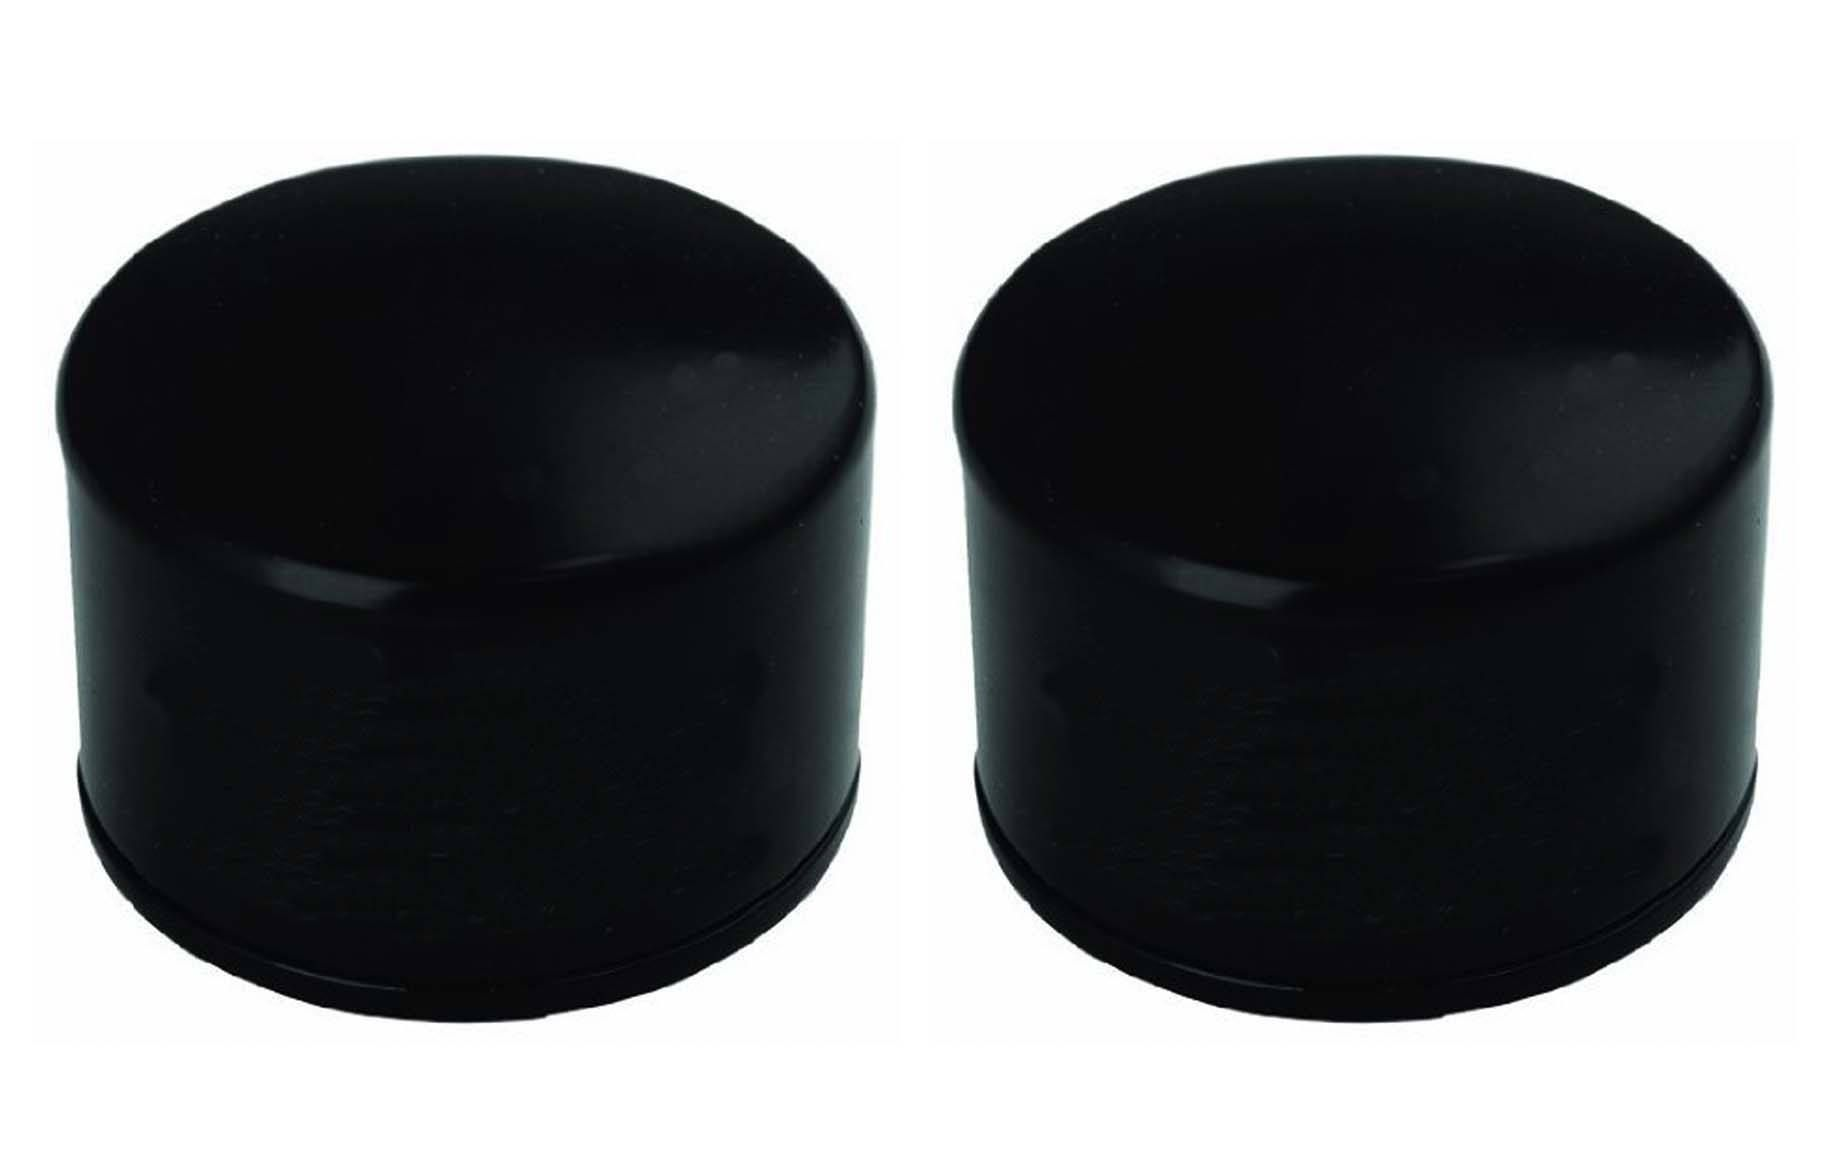 2 Briggs & Stratton Oil Filters Fit Vanguard Engines Rated 5-14 HP